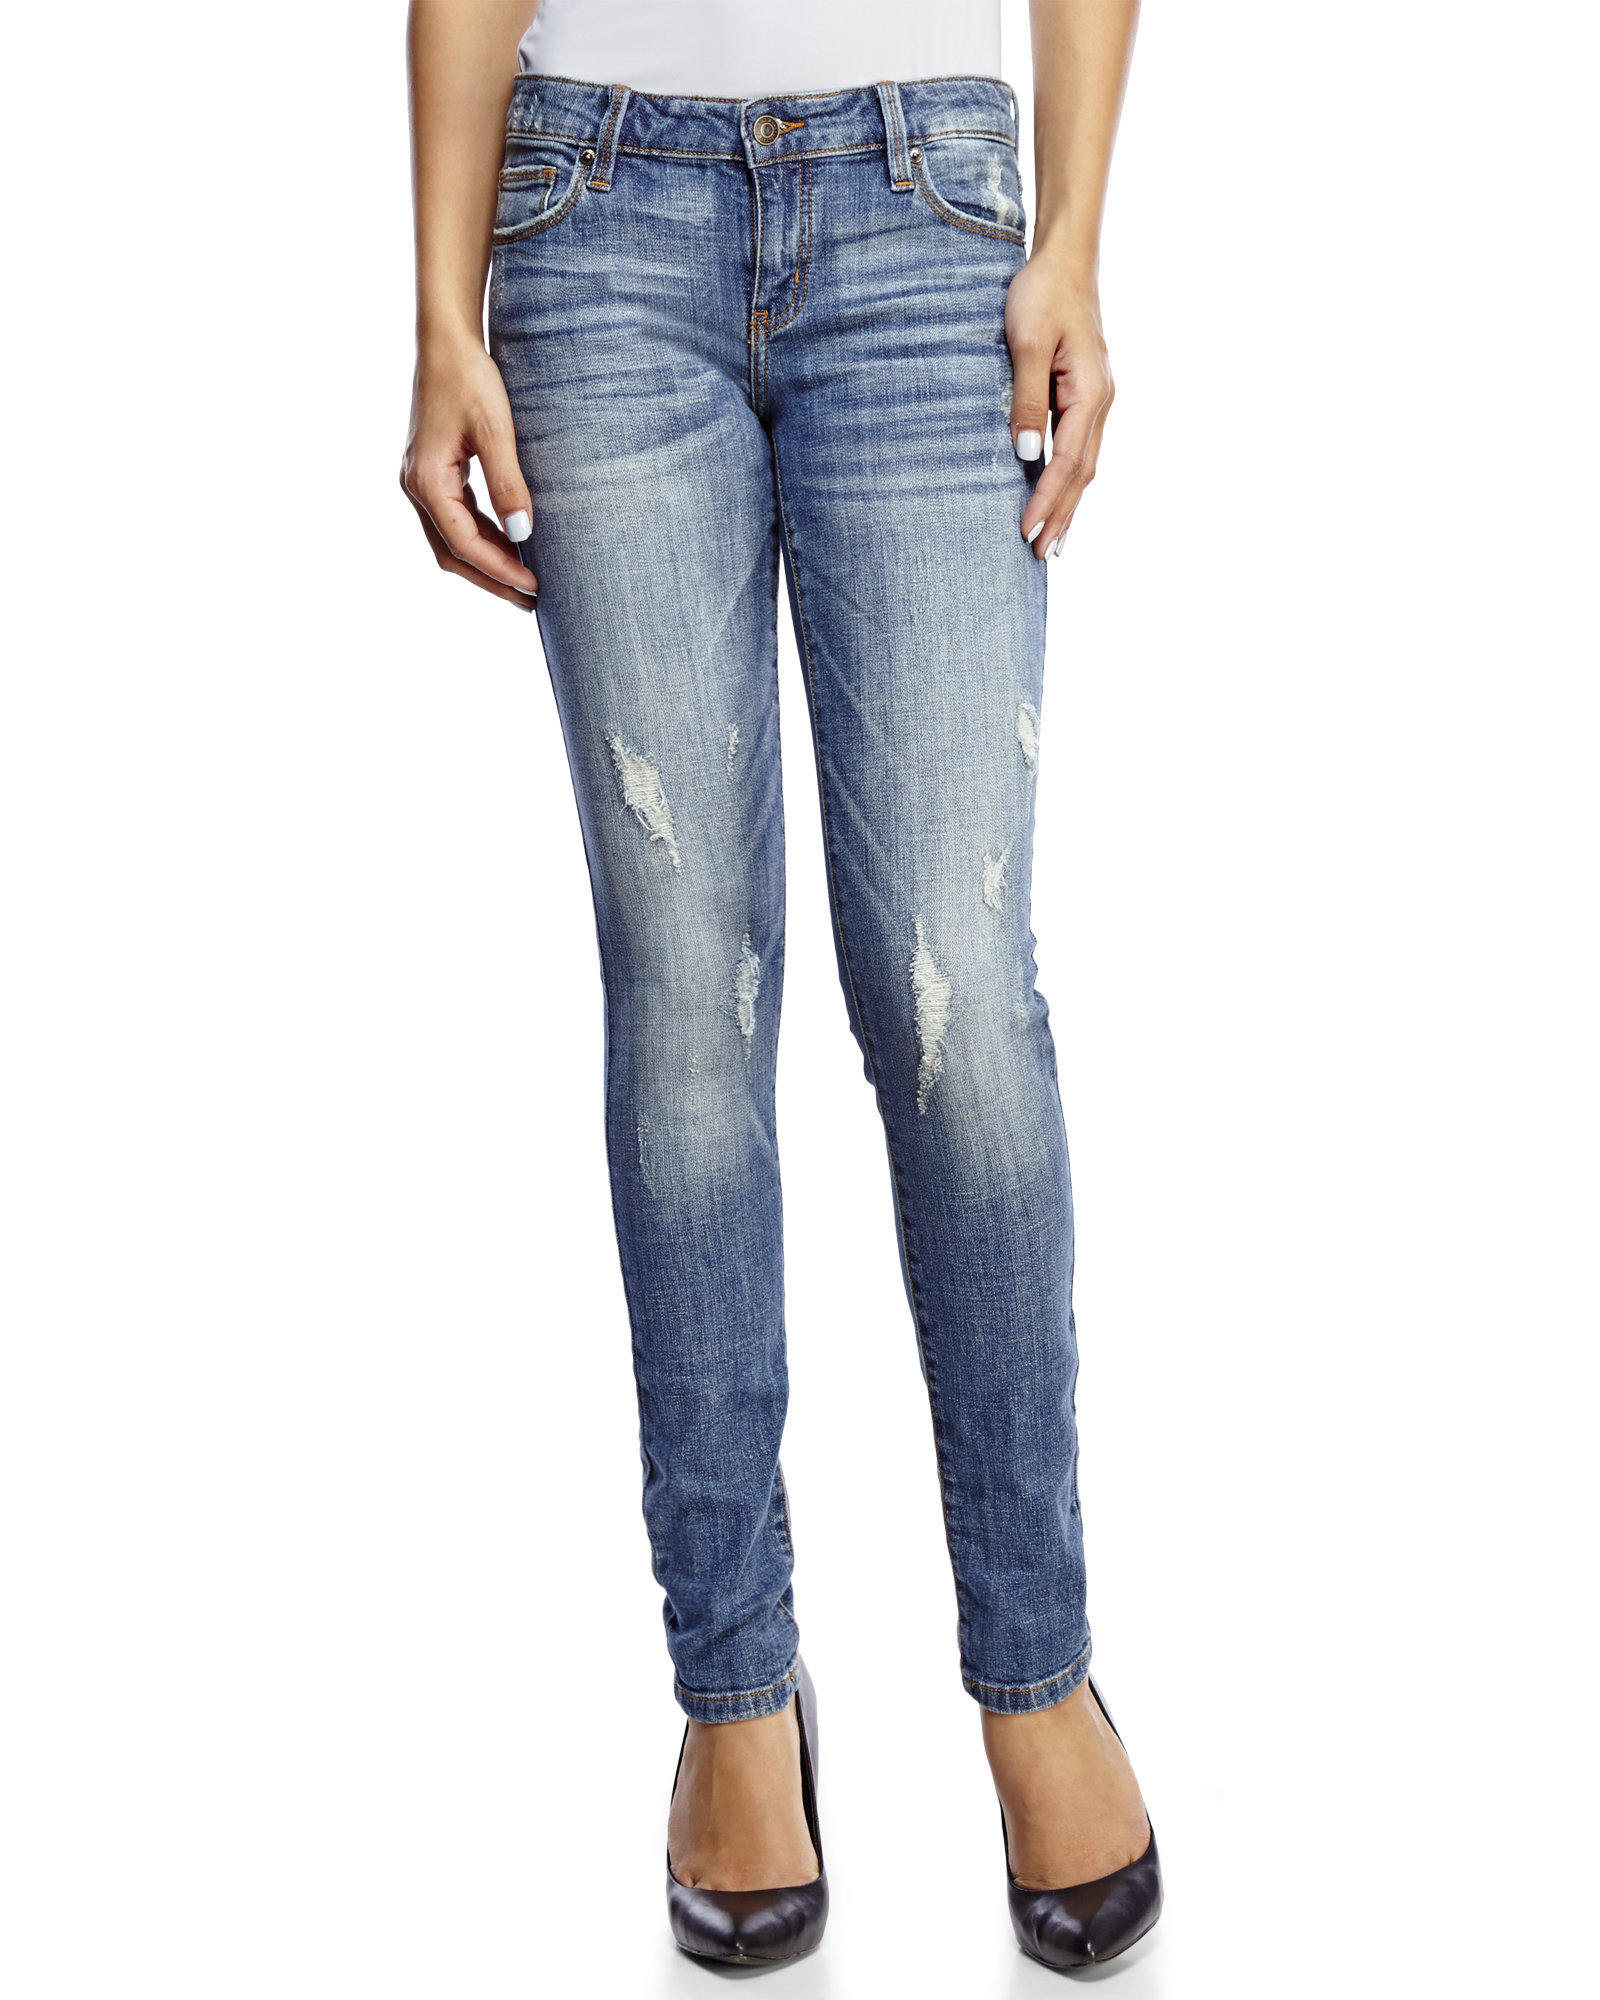 Eunina Low-Rise Distressed Classic Skinny Jeans in Blue   Lyst